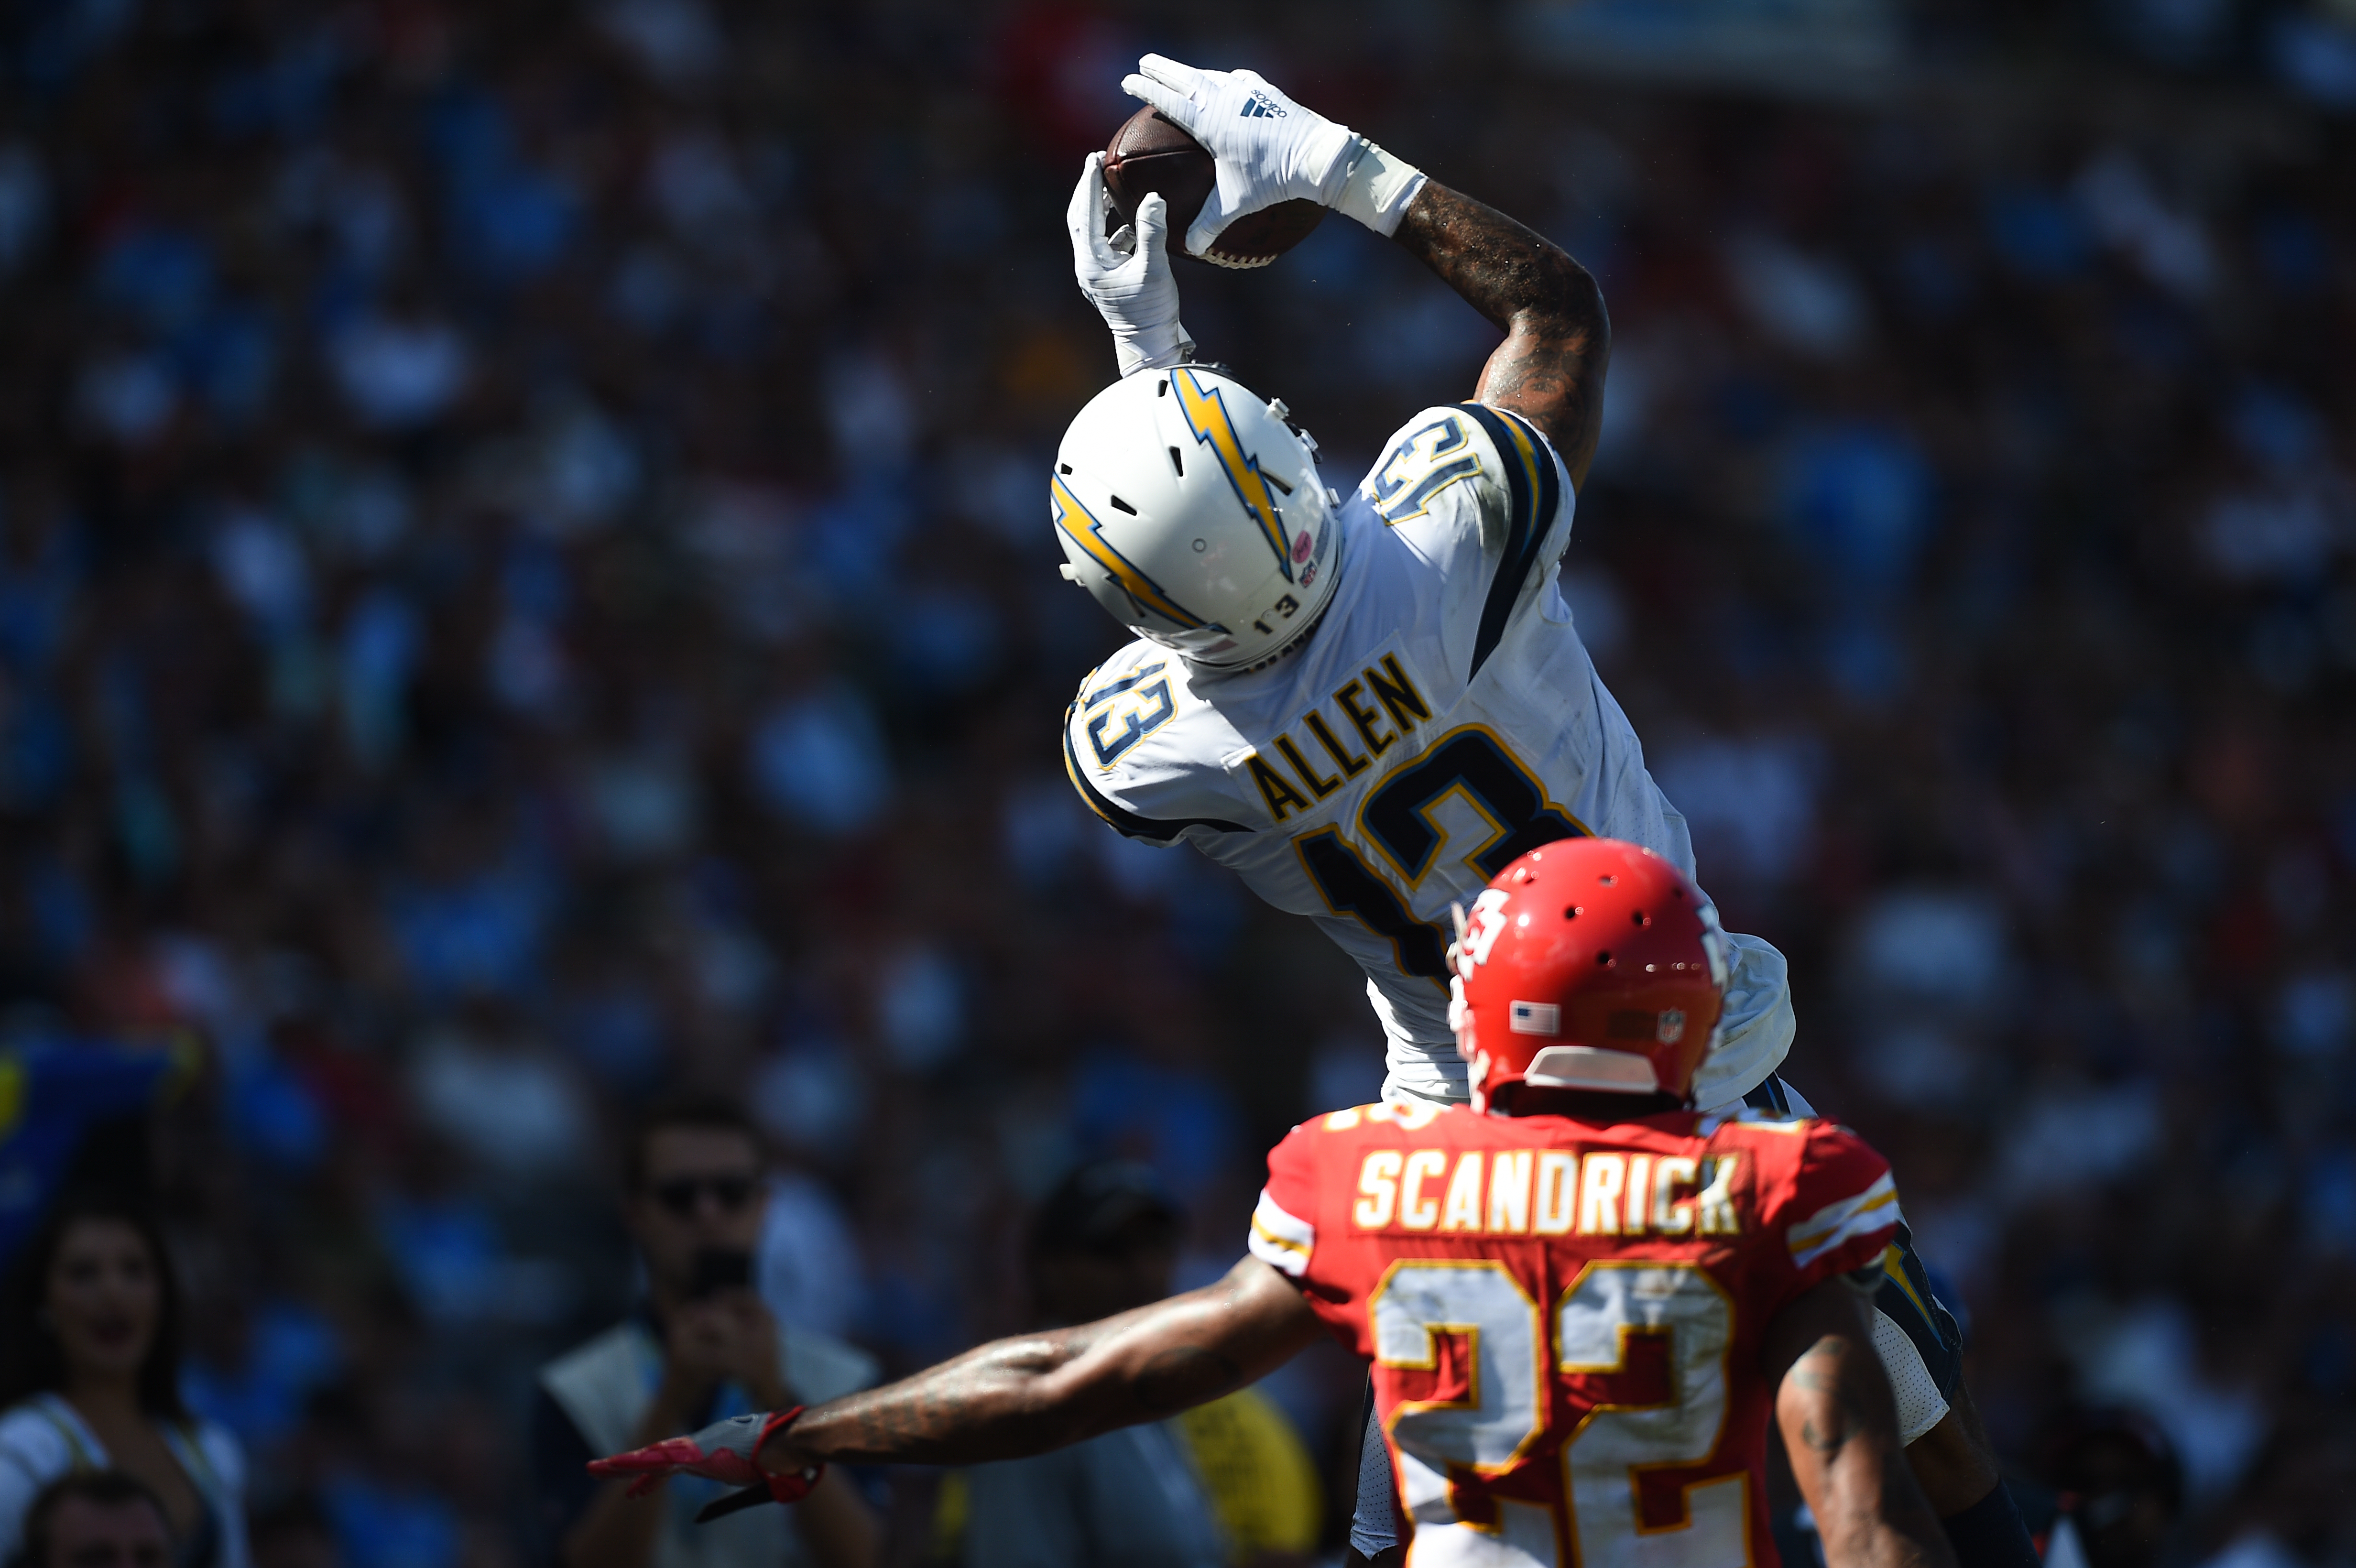 Wide receiver Keenan Allen #13 of the Los Angeles Chargers makes a catch in front of cornerback Orlando Scandrick #22 of the Kansas City Chiefs at StubHub Center on September 9, 2018 in Carson, California. (Photo by Kevork Djansezian/Getty Images)